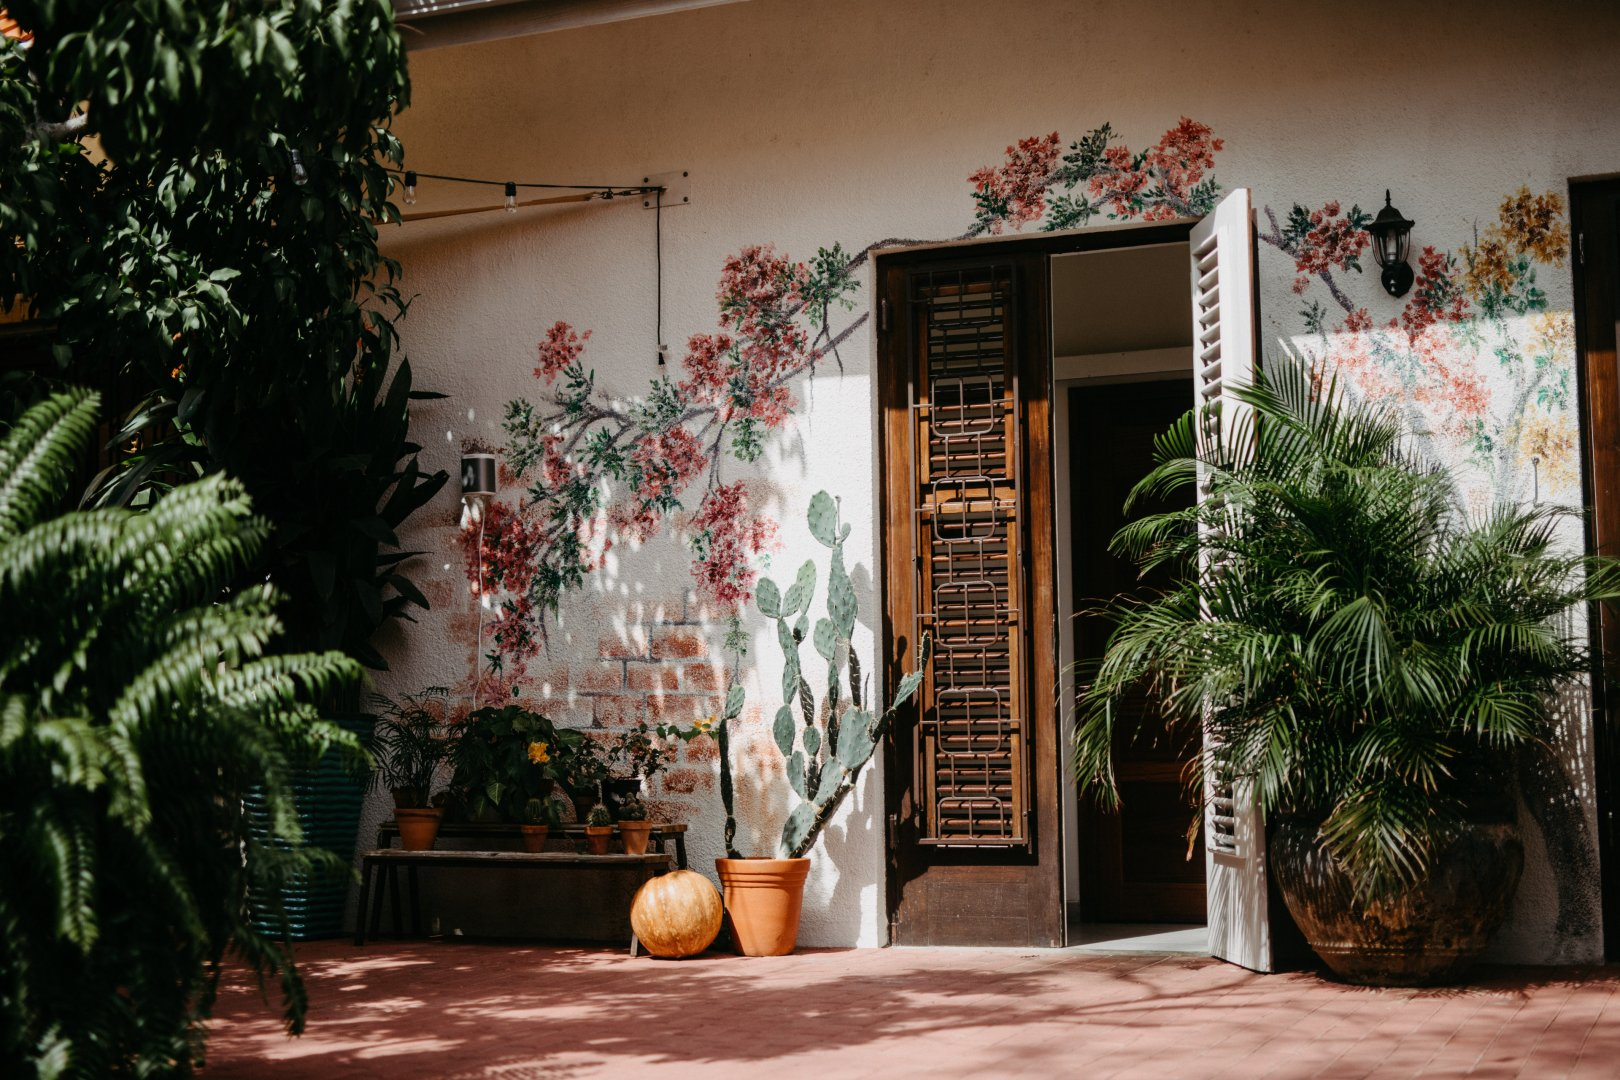 House Door Home Tree Building Architecture Houseplant Room Facade Plant Window Real estate Interior design Courtyard Flower